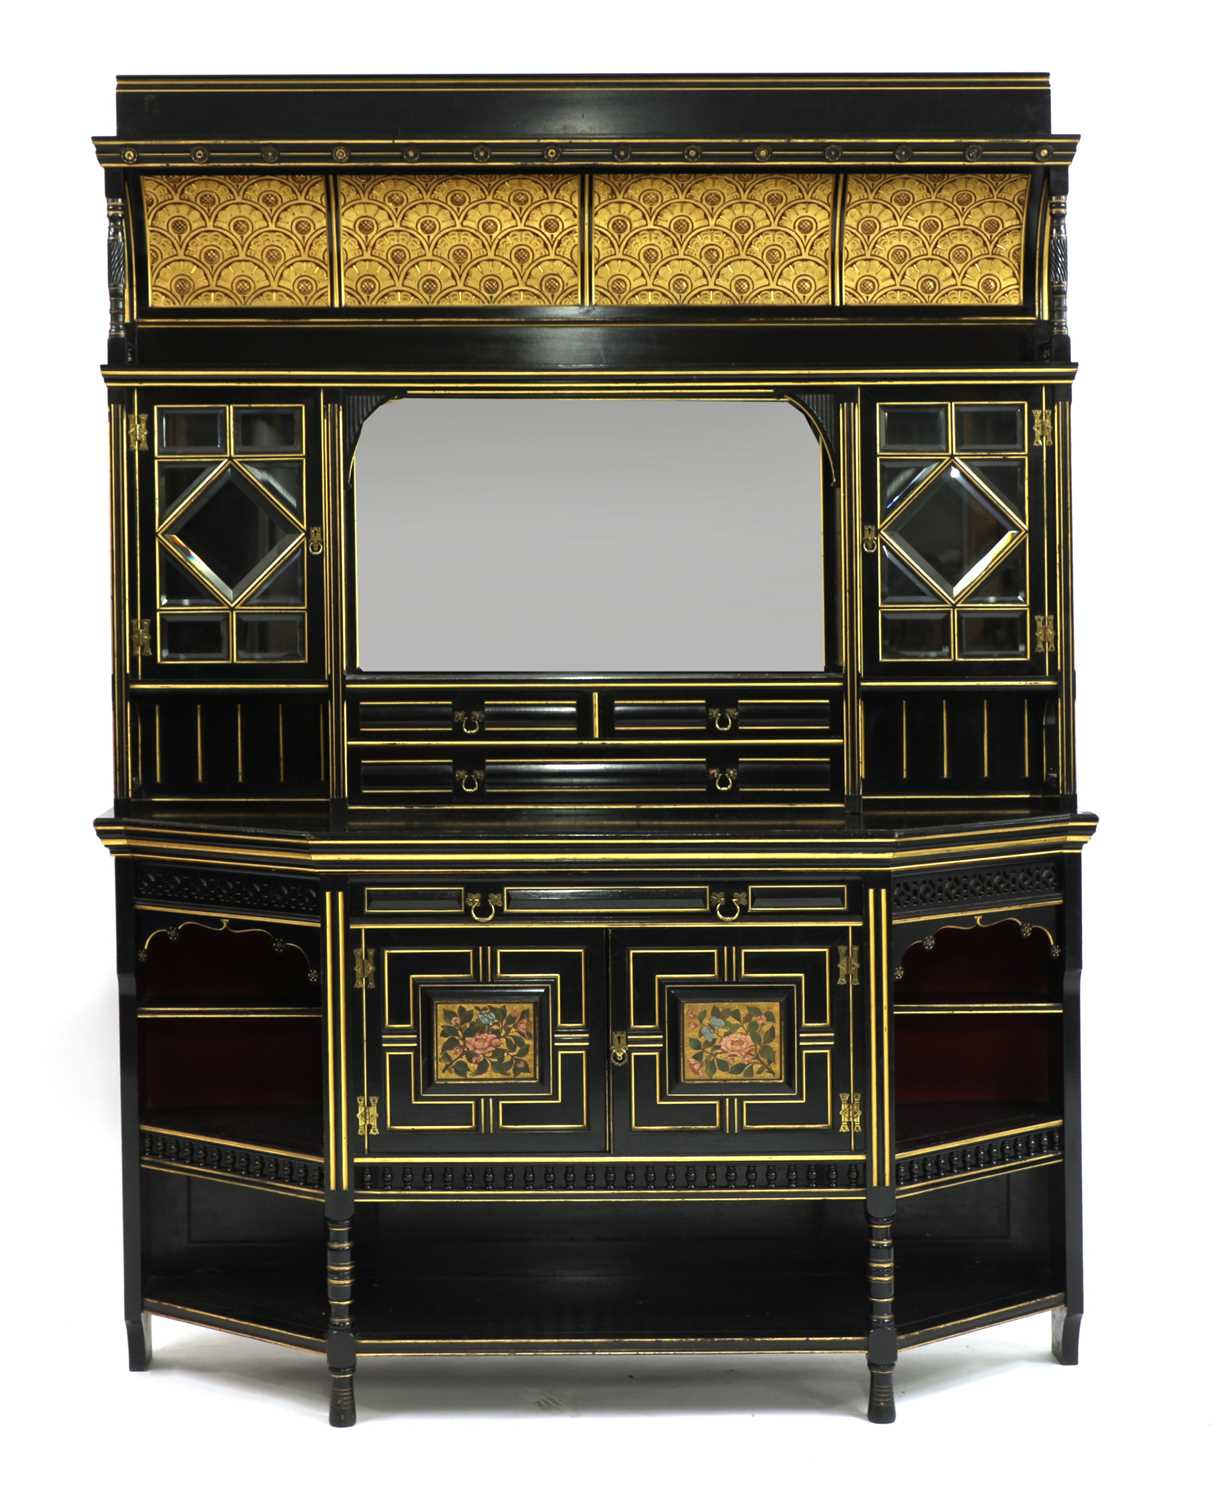 Lot 27-An Aesthetic ebonised and gilt wall cabinet